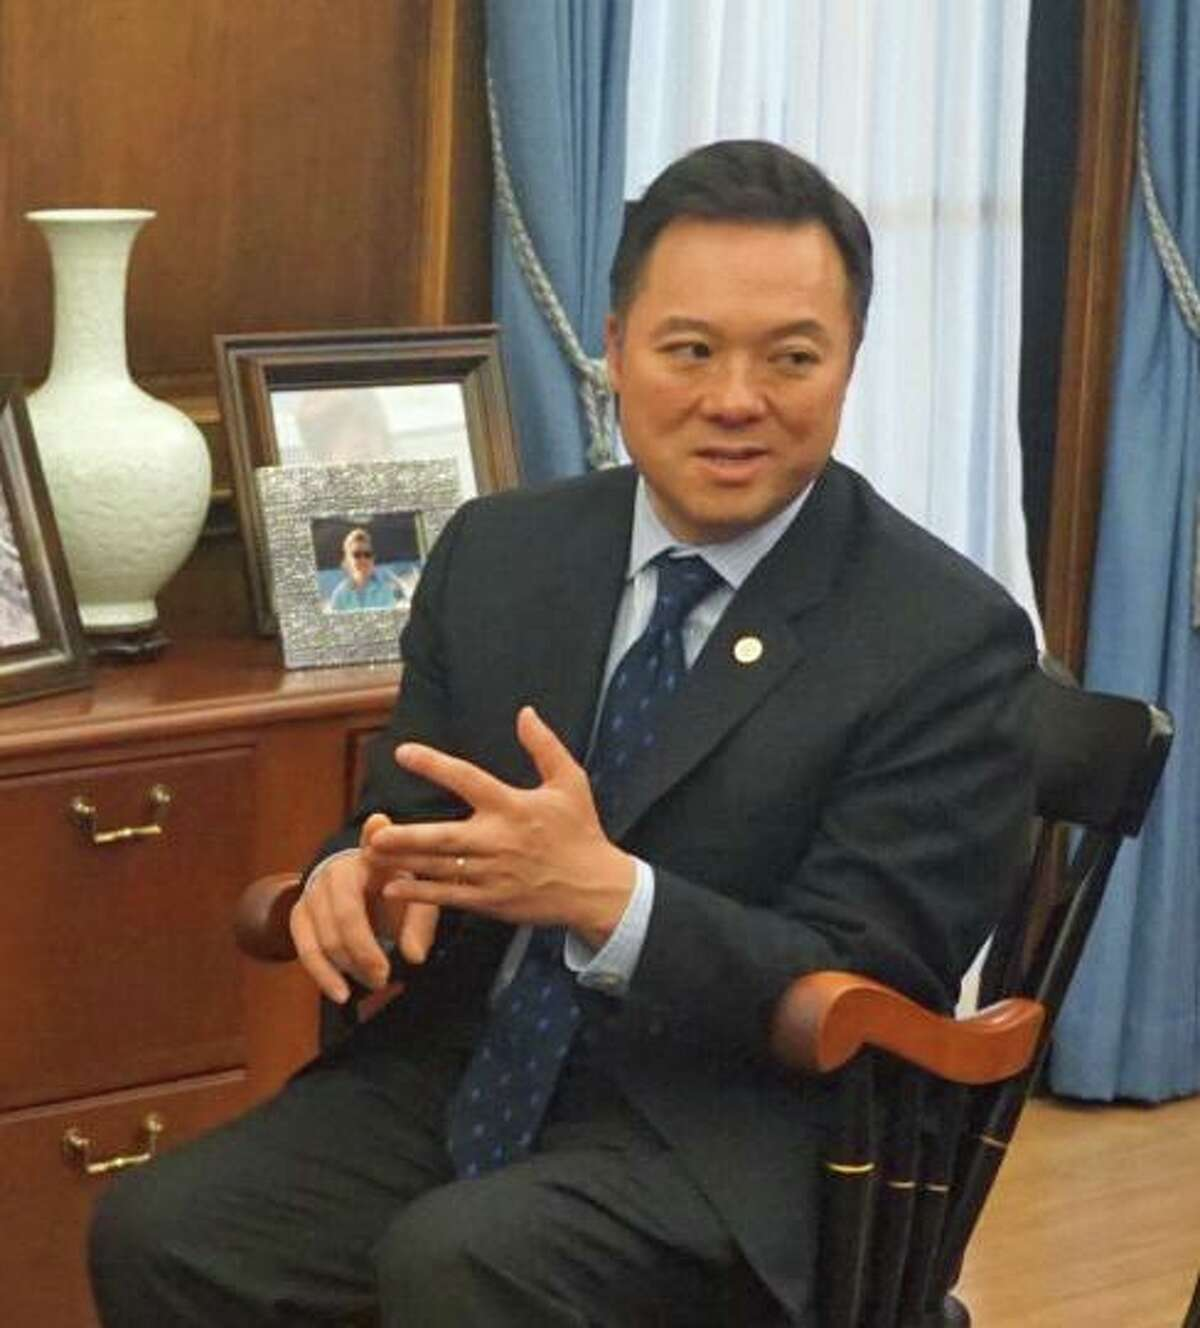 Attorney General William Tong was asked to provide a legal opinion of a section dealing with the Office of Inspector General to investigate police misconduct in the police accountability bill passed by the State House of Representatives.